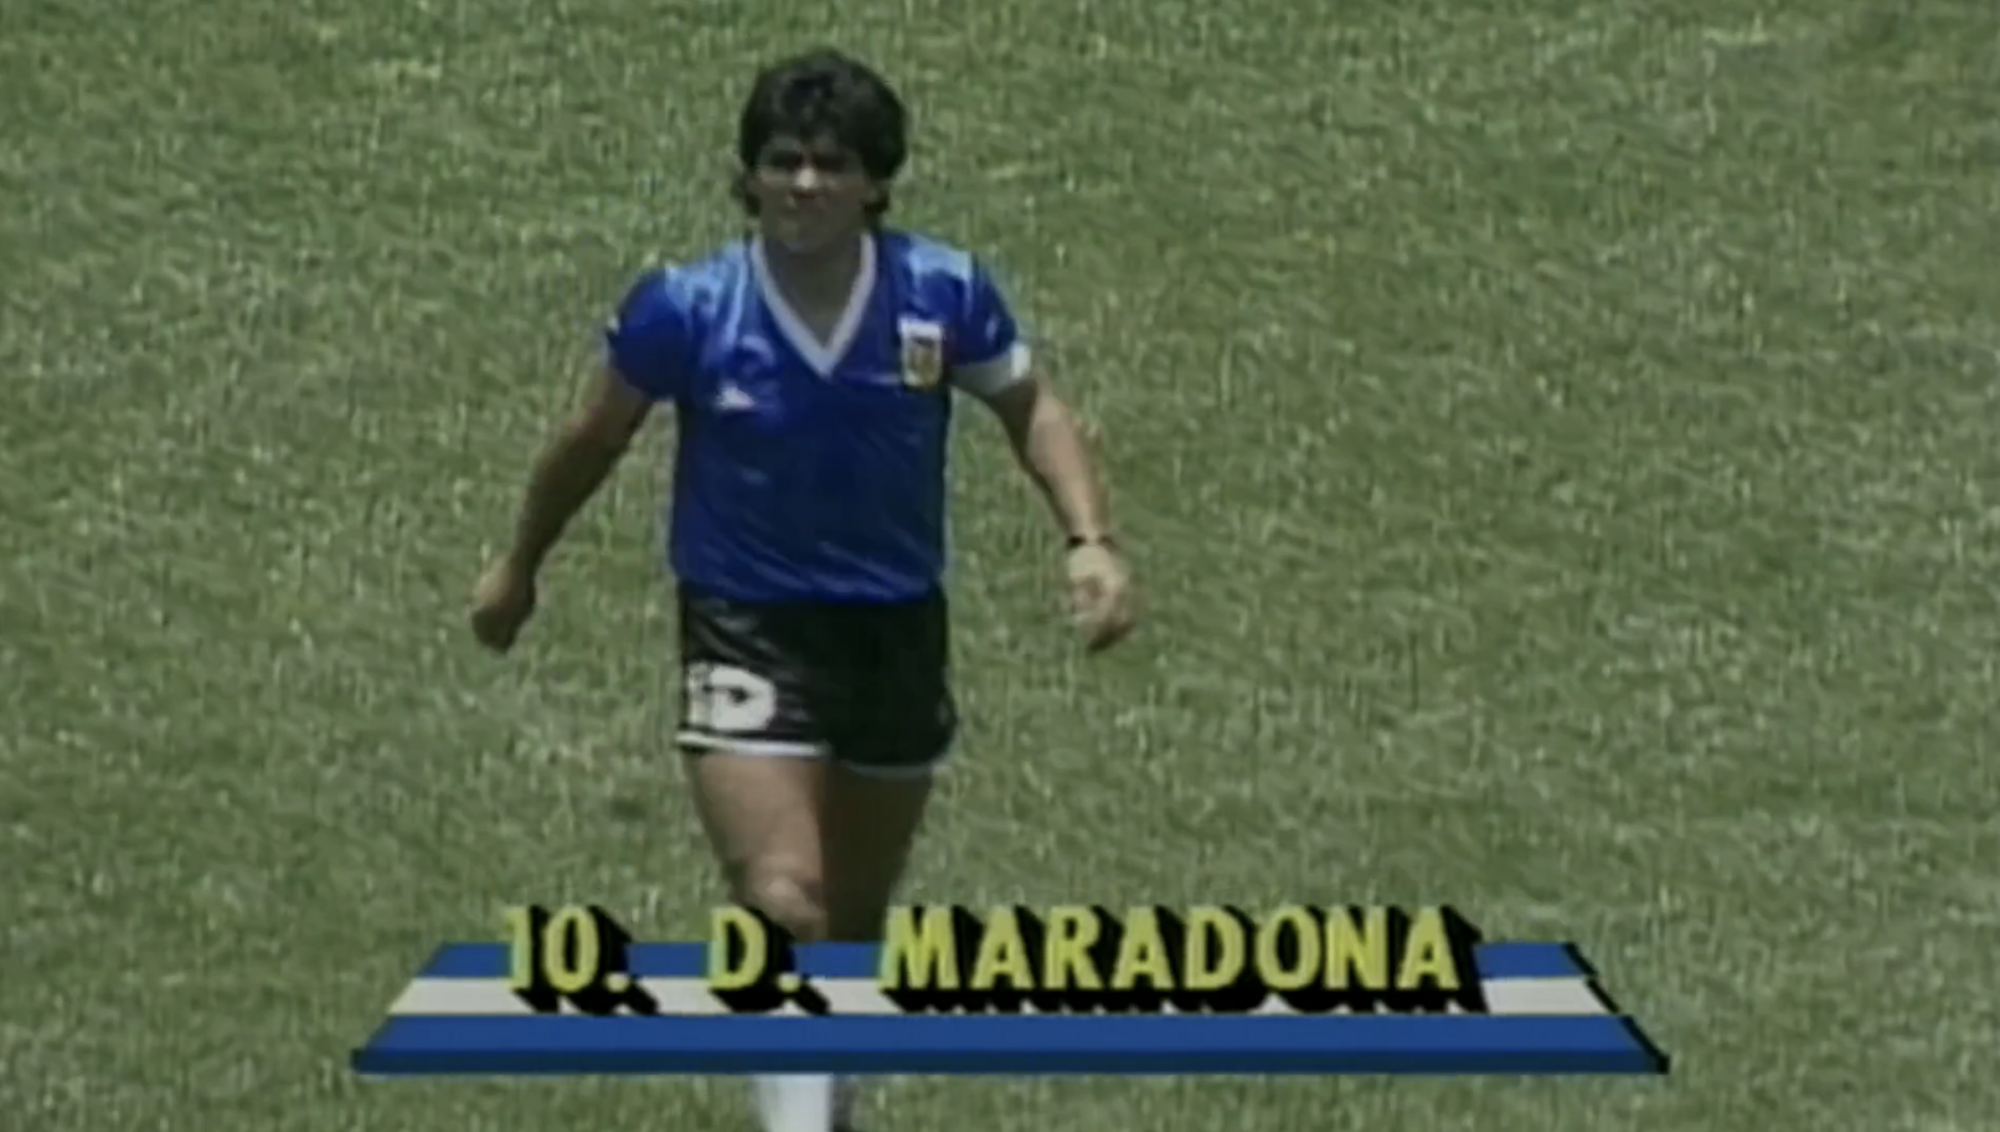 Argentina football legend Diego Maradona dies aged 60 - channel 4